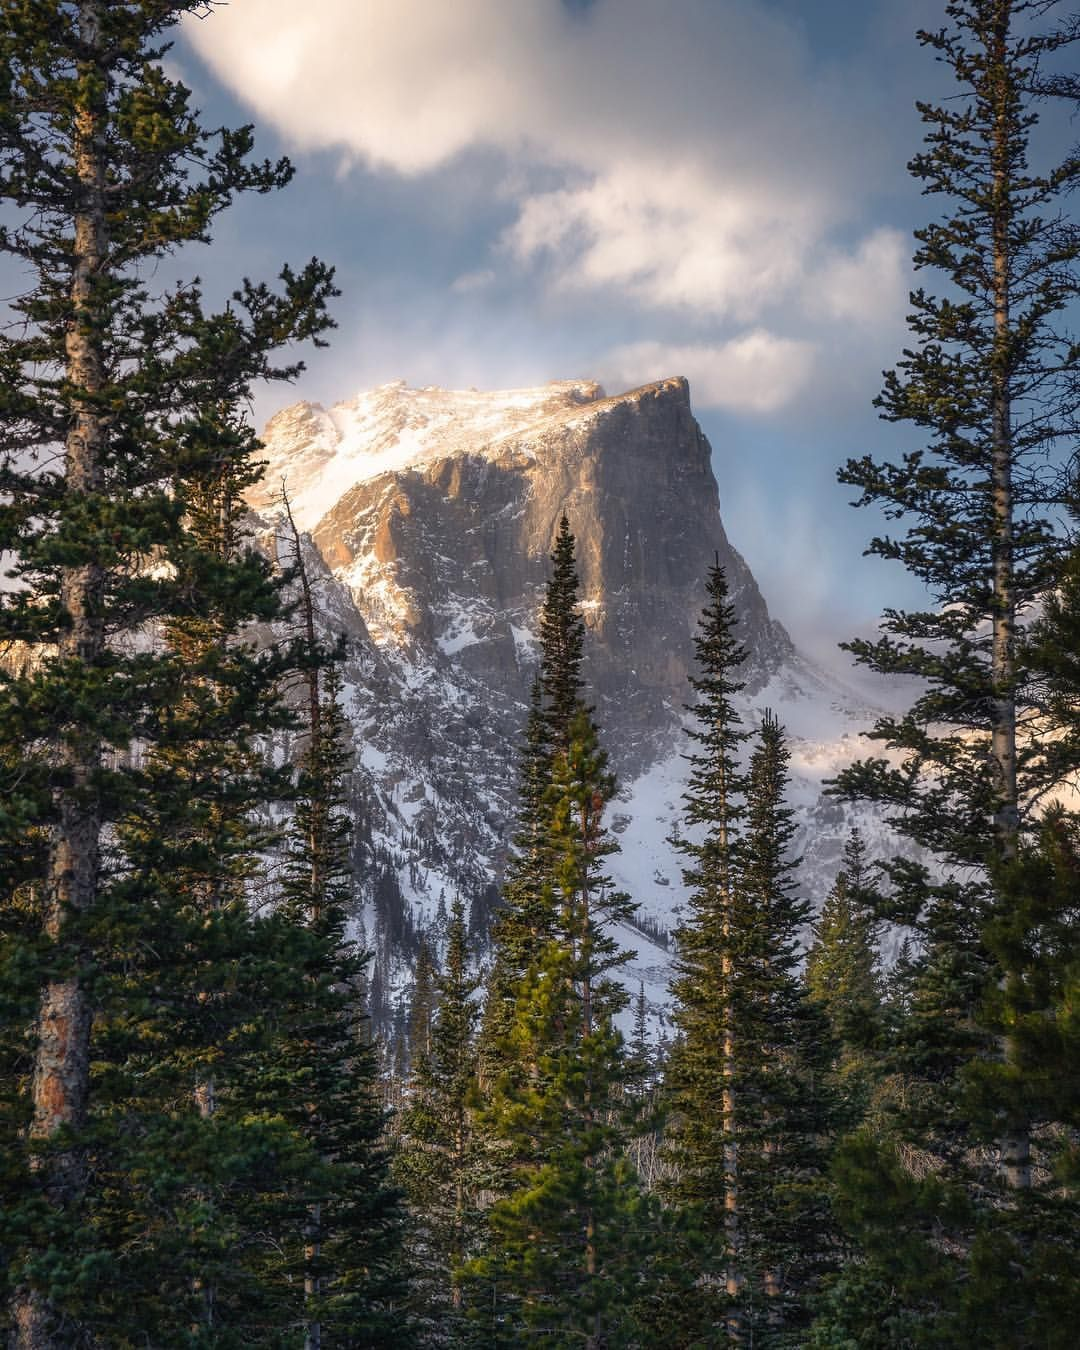 Landscapes Of Colorado Mountains And Plains By Ben Strauss Photogra Mountain Photography Mountain Landscape Photography Rocky Mountain National Park Colorado